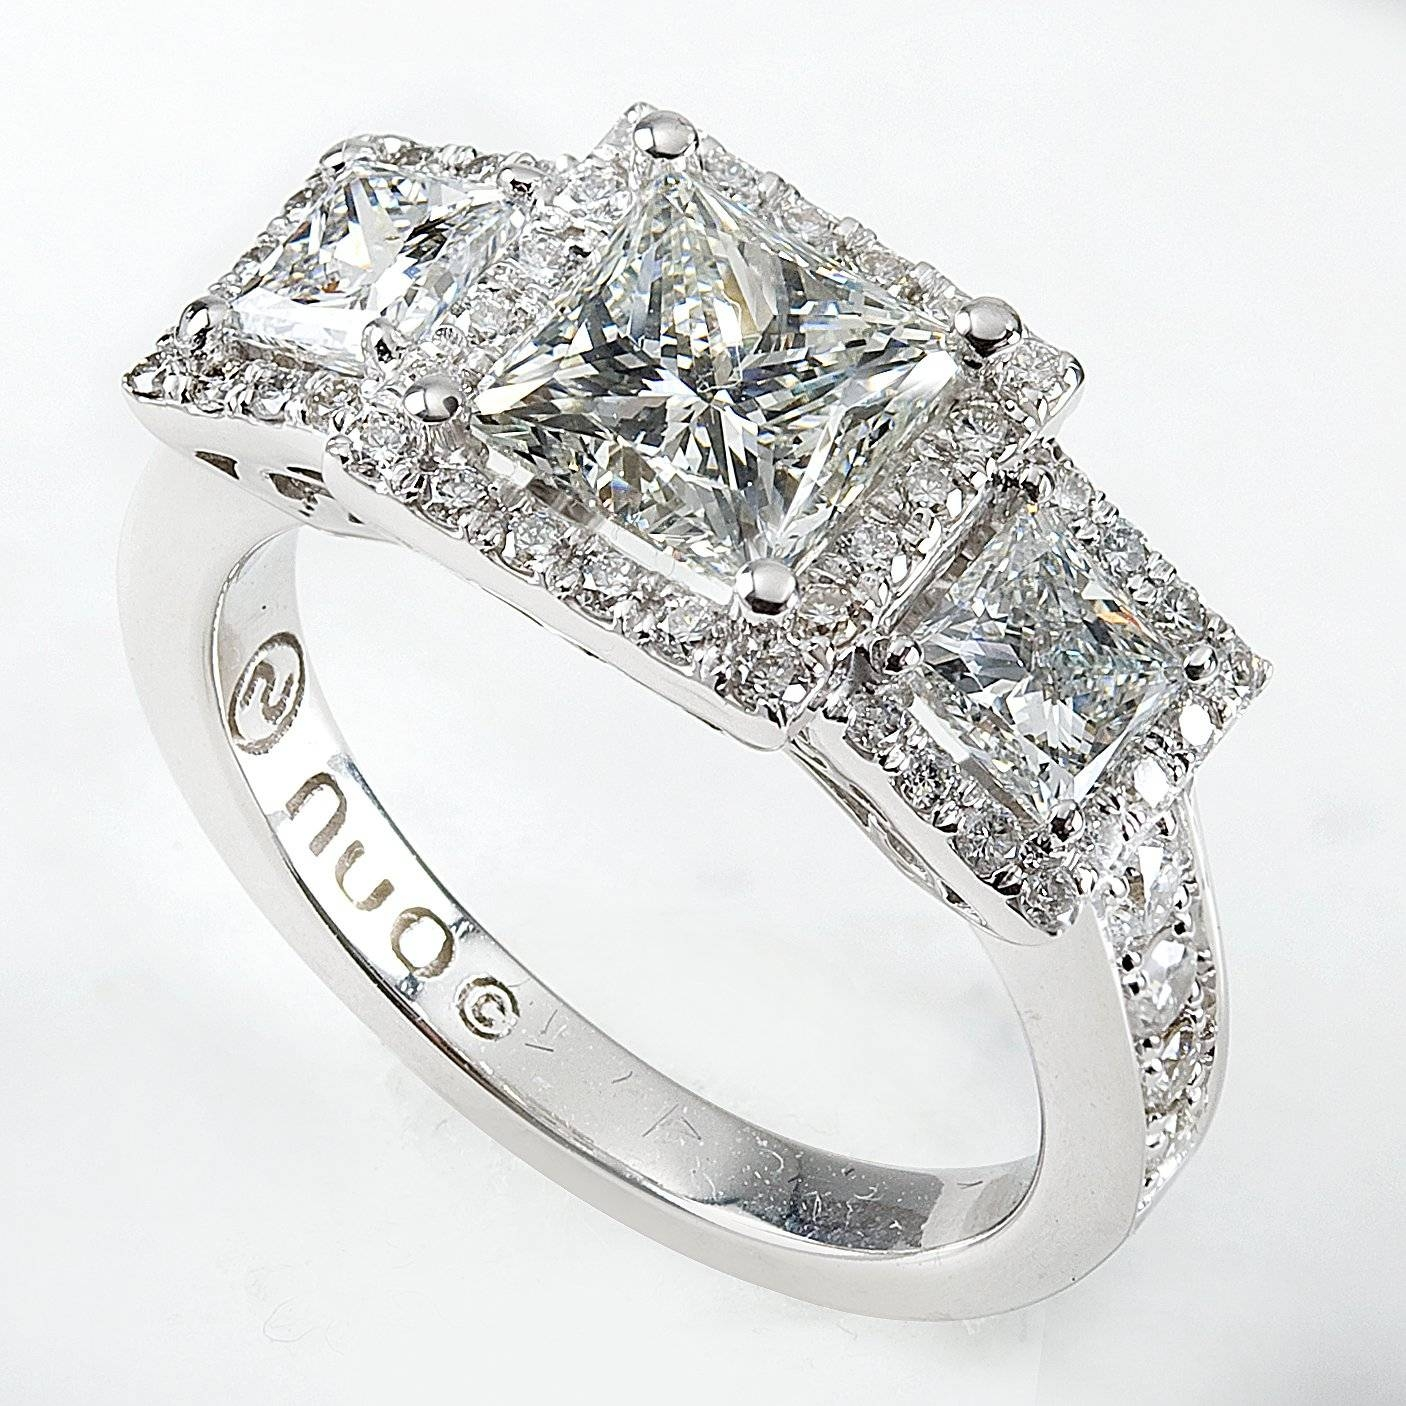 engagement princess fif certified if cut product gold diamond f gia jewellery white rings ring